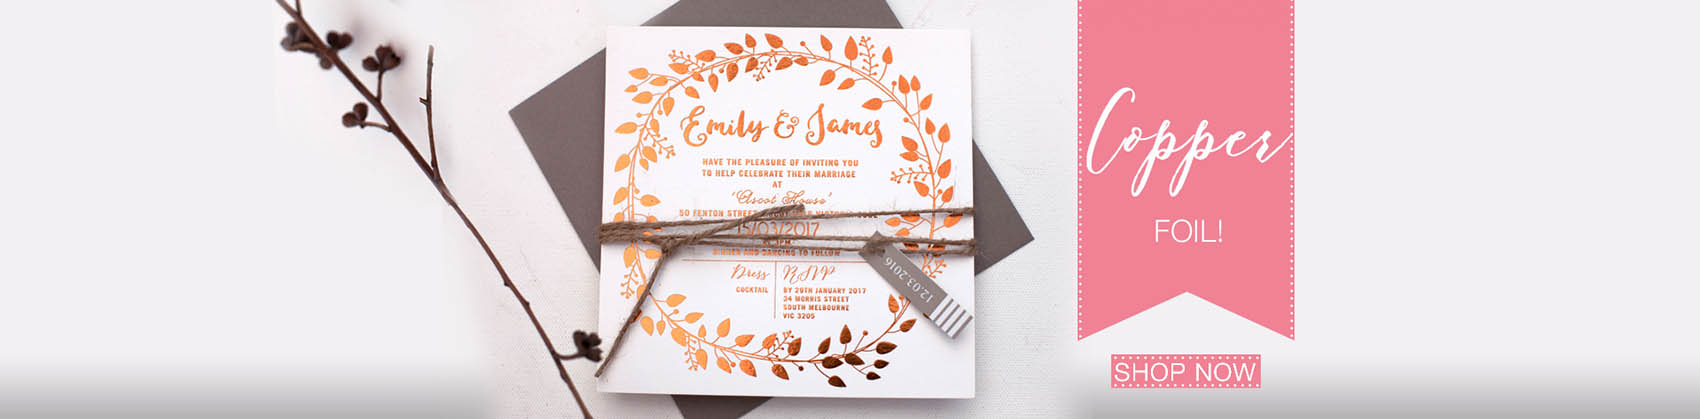 Modern Unique Designer Wedding Invitations & Stationery Online Australia